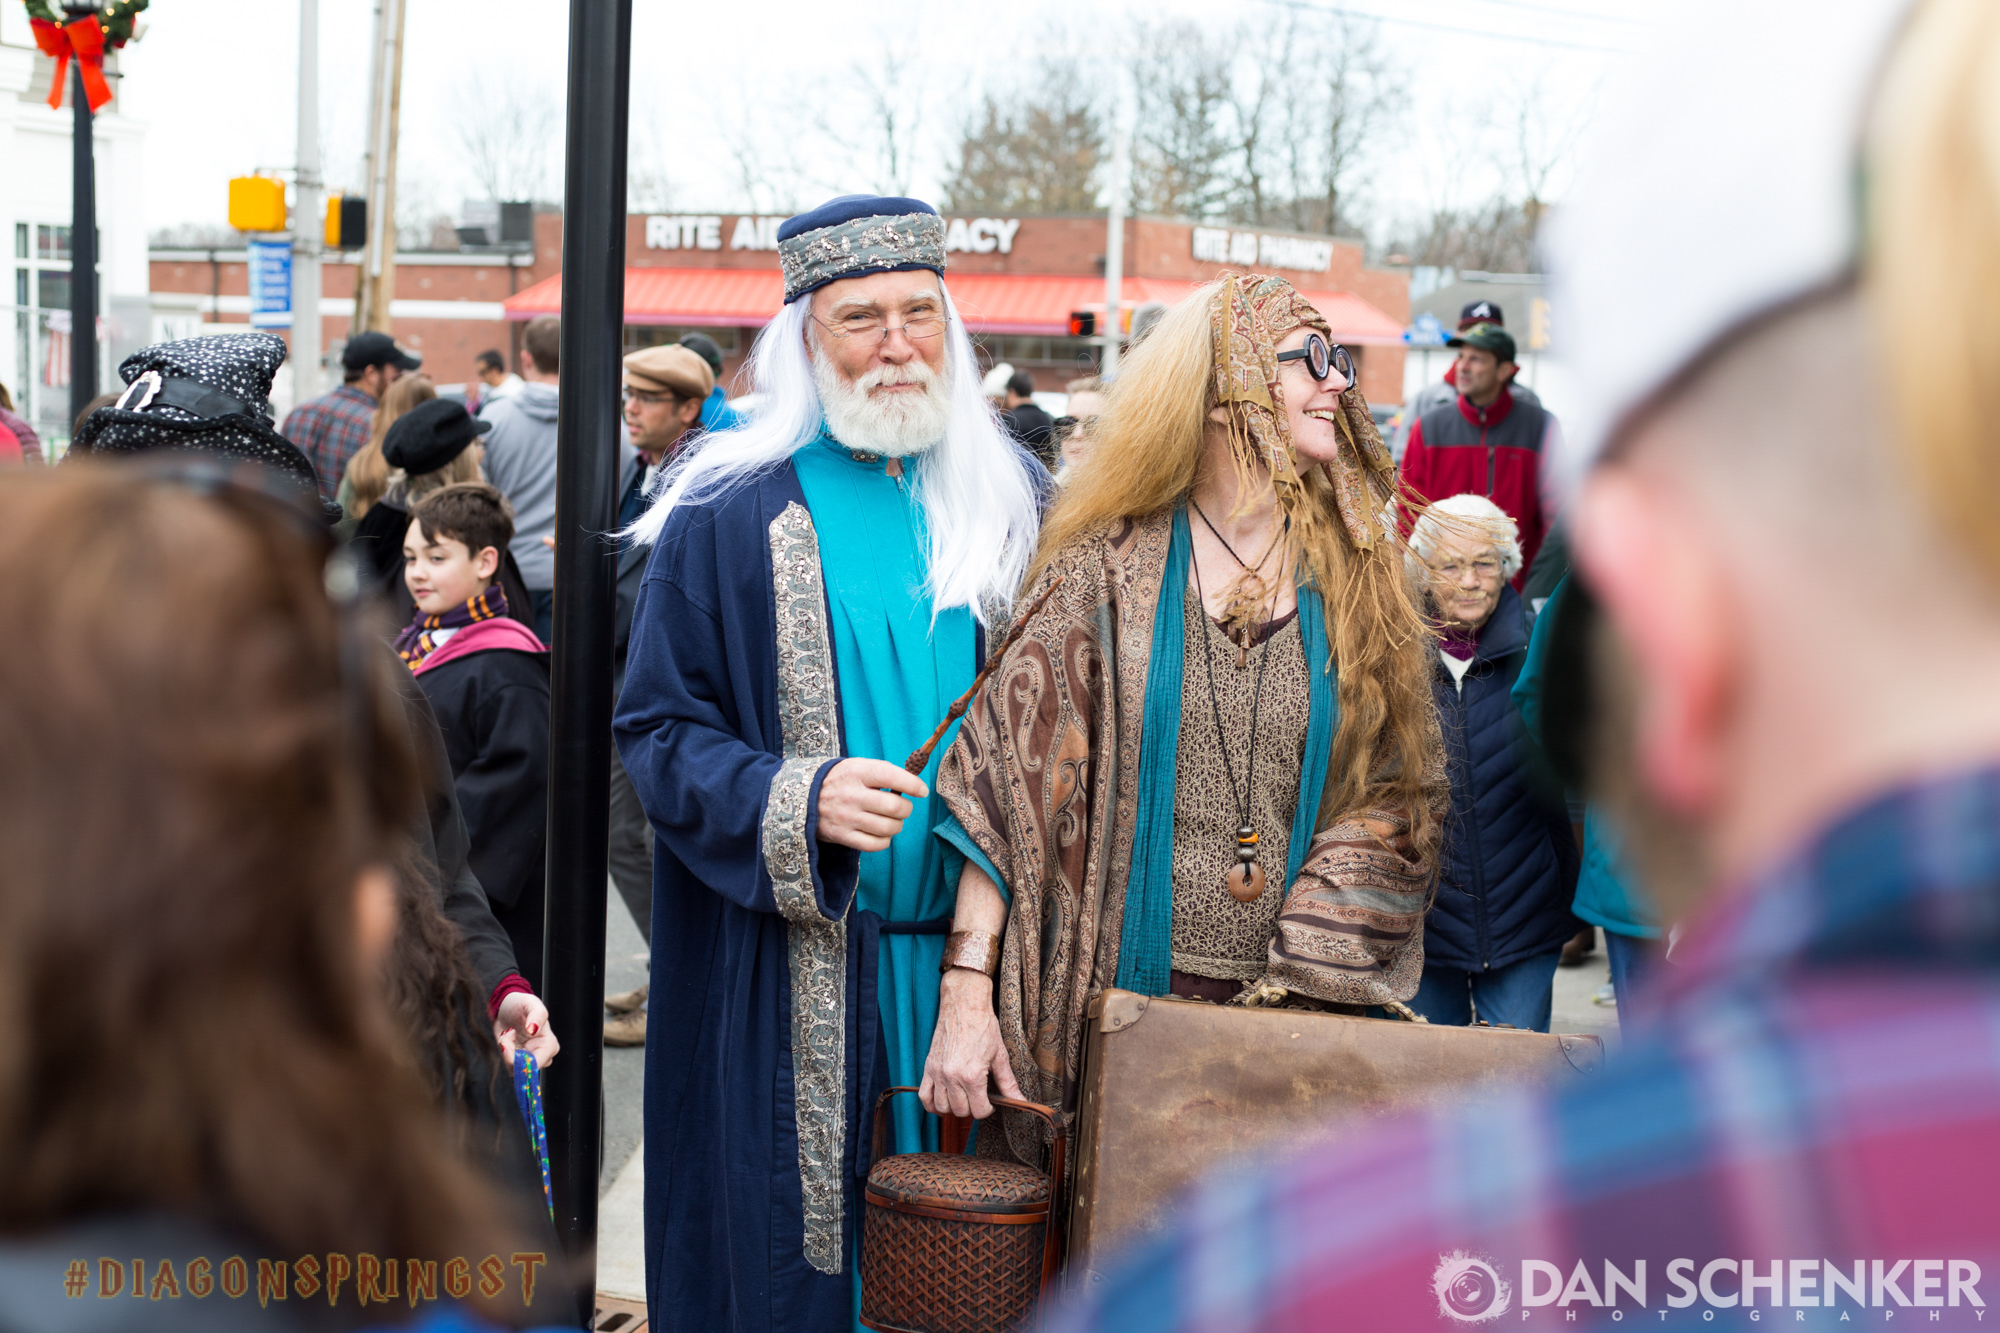 There won't ever be better Dumbledore or Trelawney cosplayers. I refuse to believe it. 💯